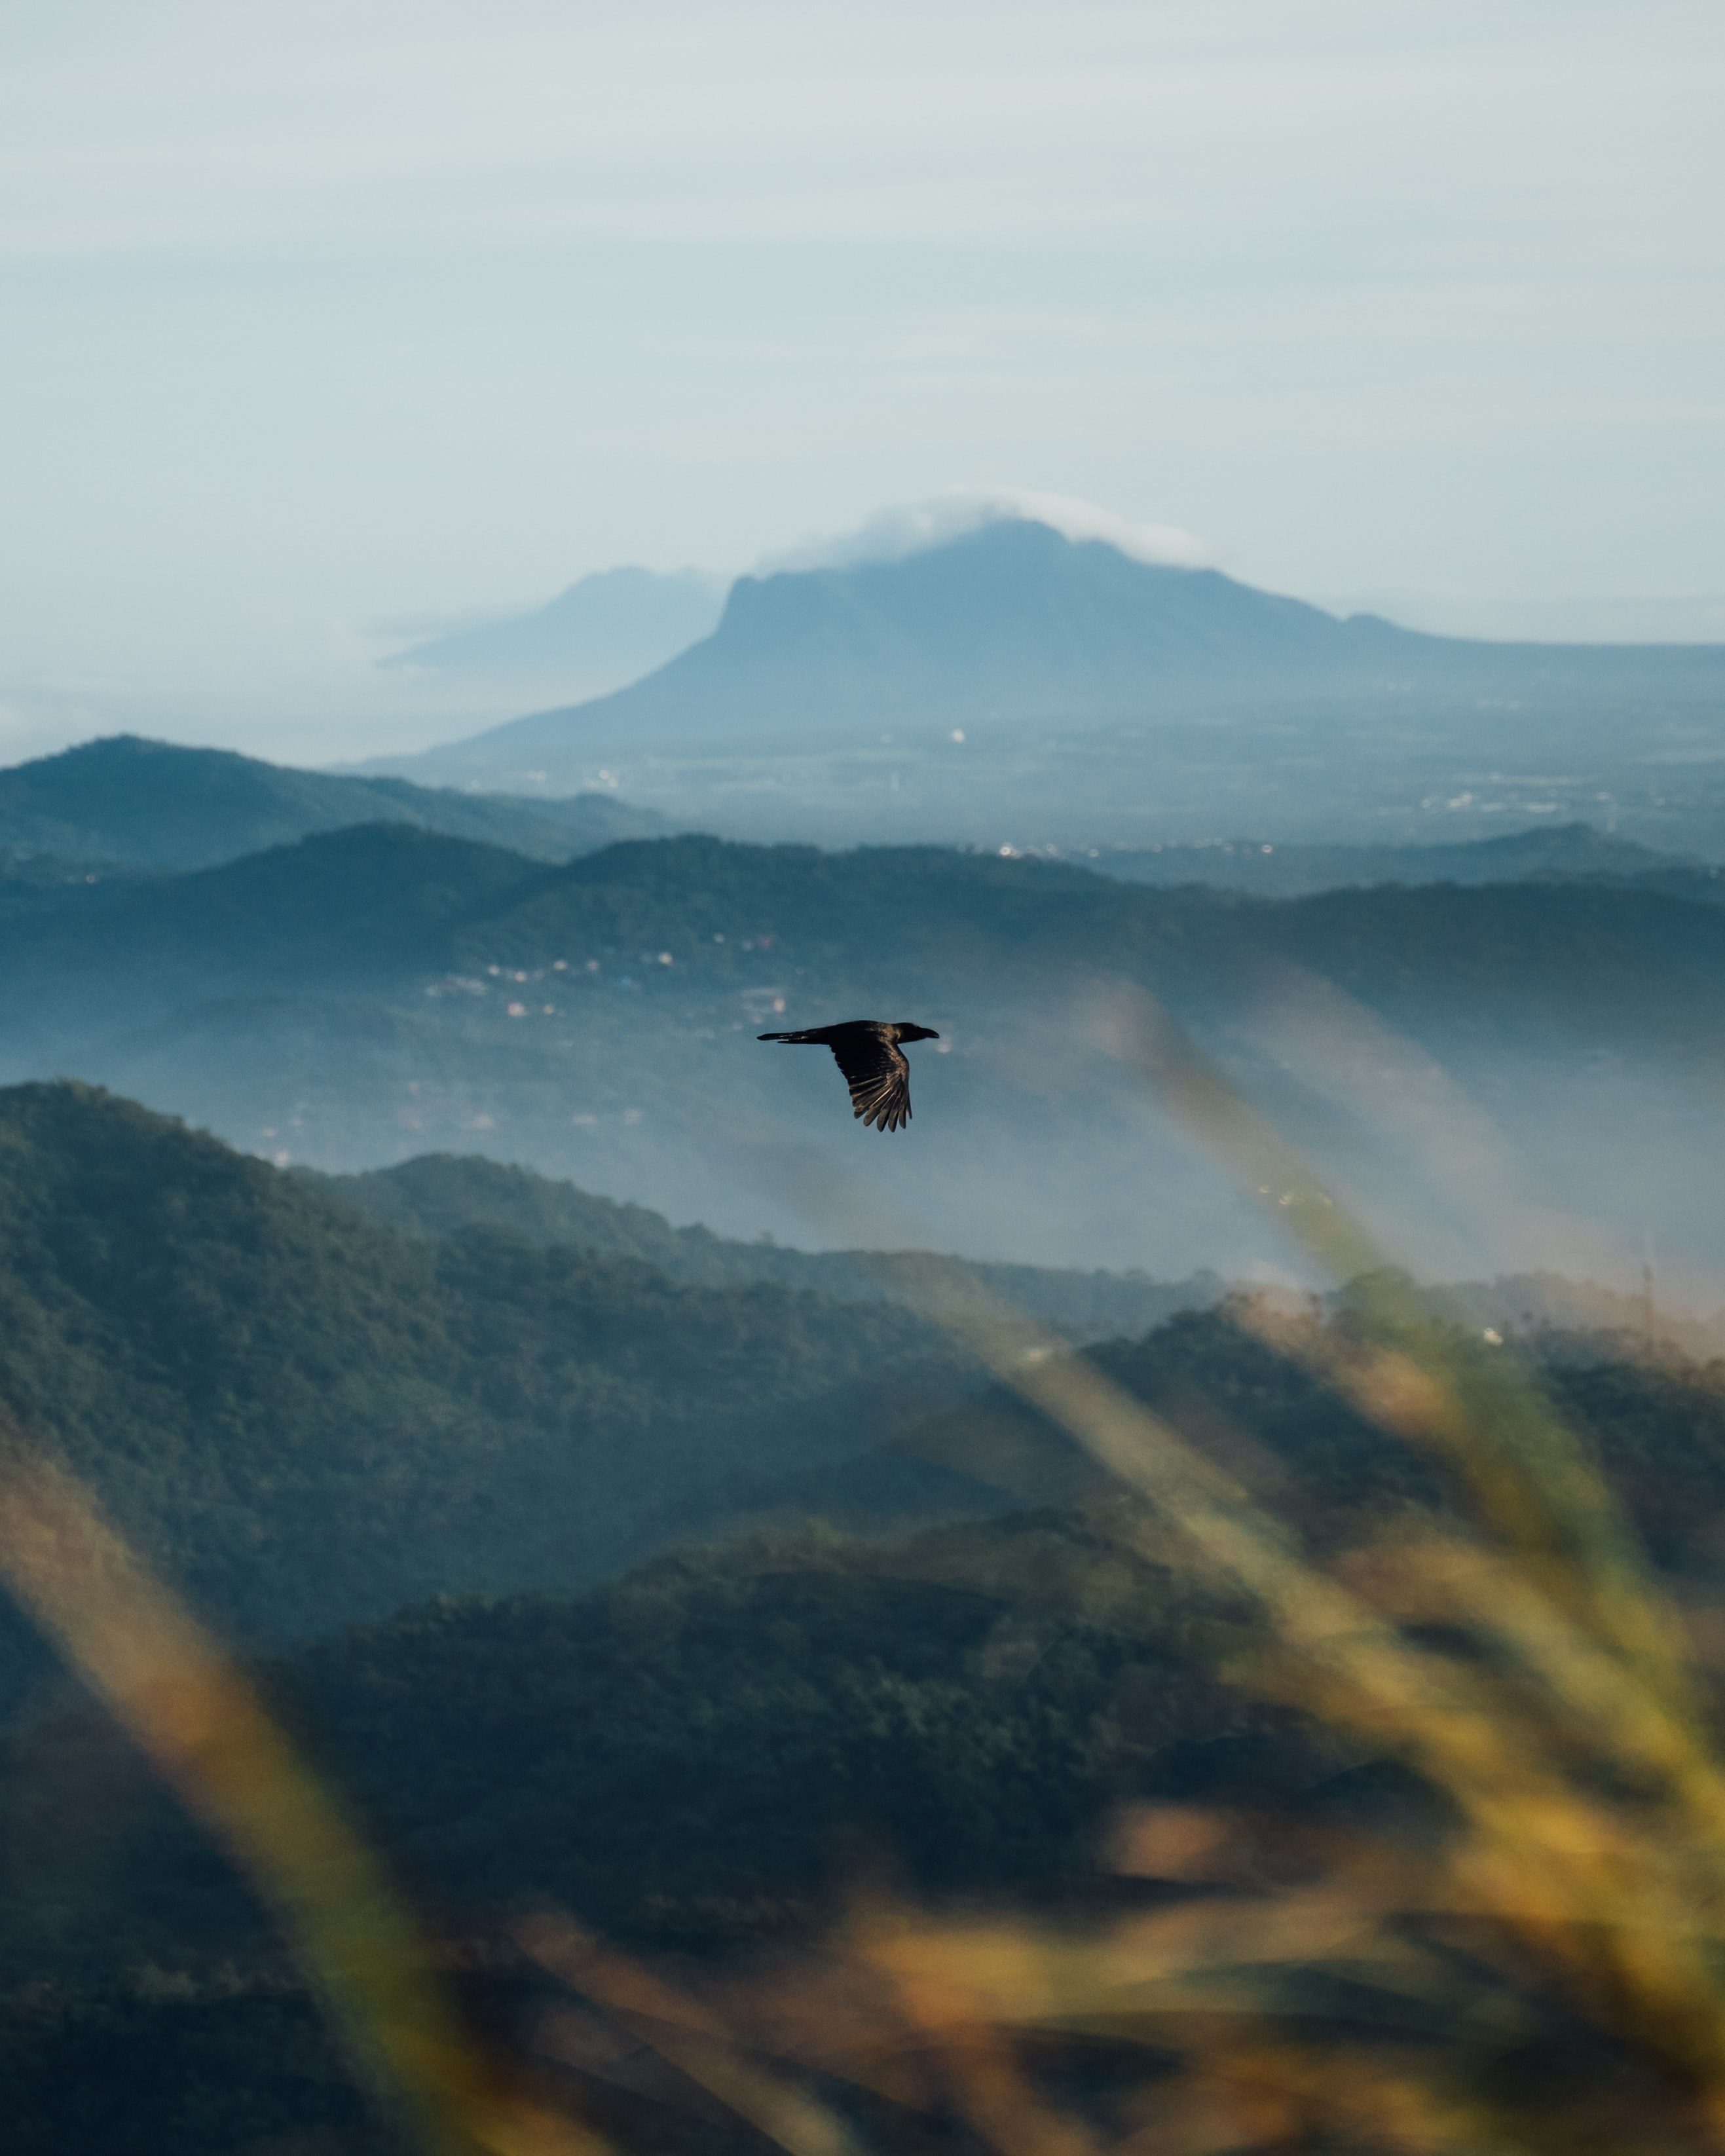 71422 download wallpaper Animals, Raven, Bird, Flight, Wildlife, Mountains screensavers and pictures for free